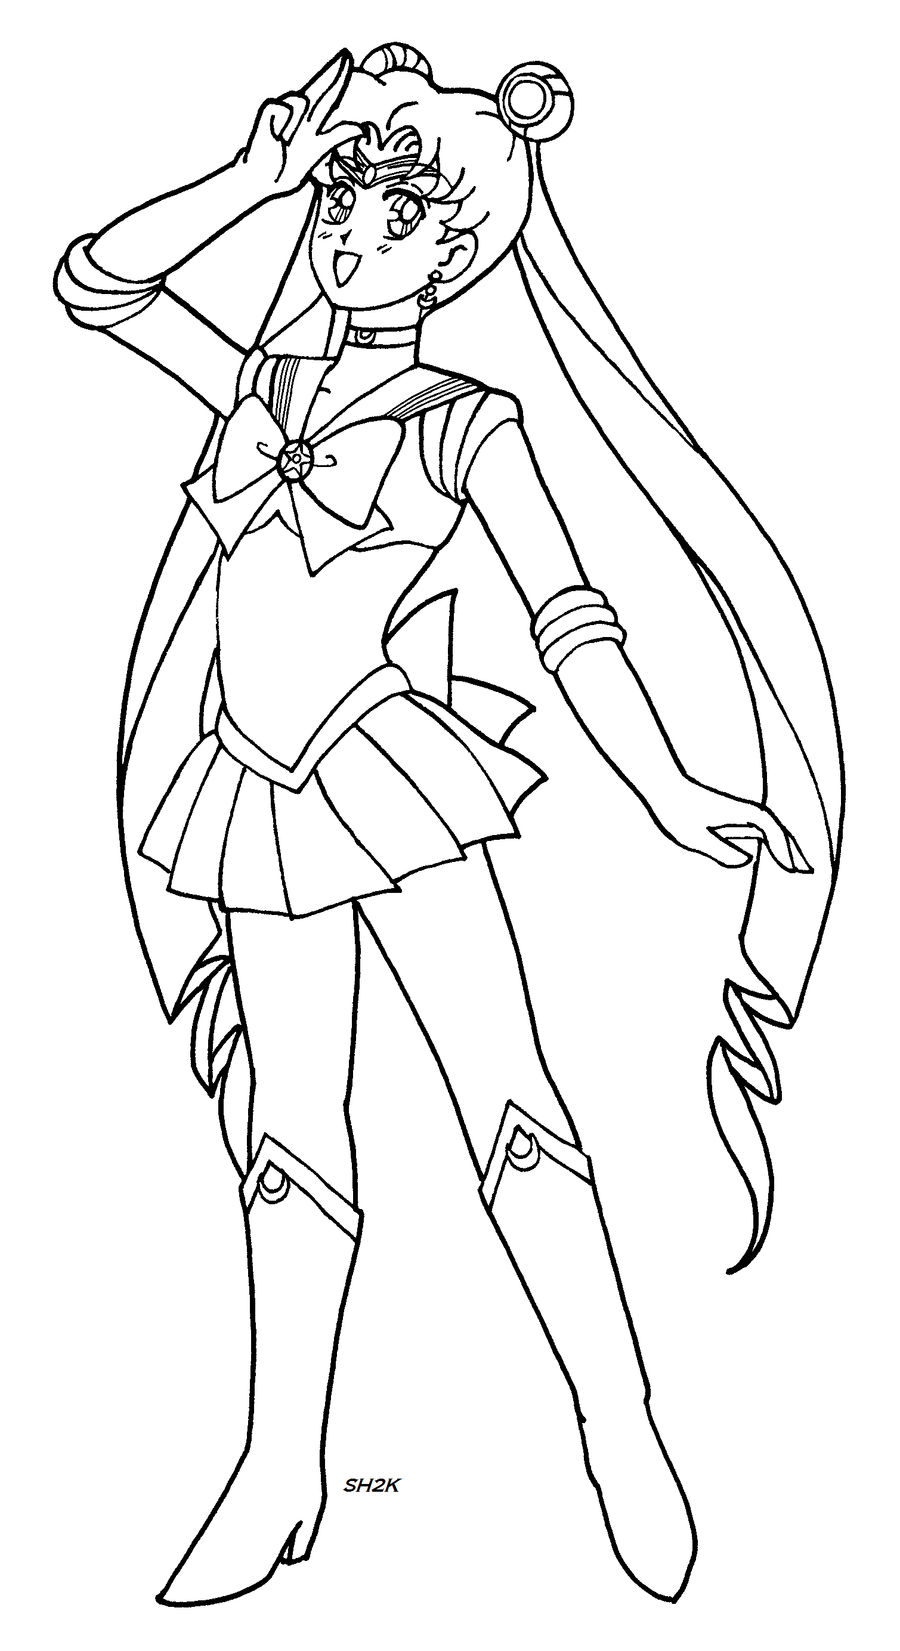 Sailor moon lineart msp by sailorharmony2000 on deviantart for Sailor moon group coloring pages